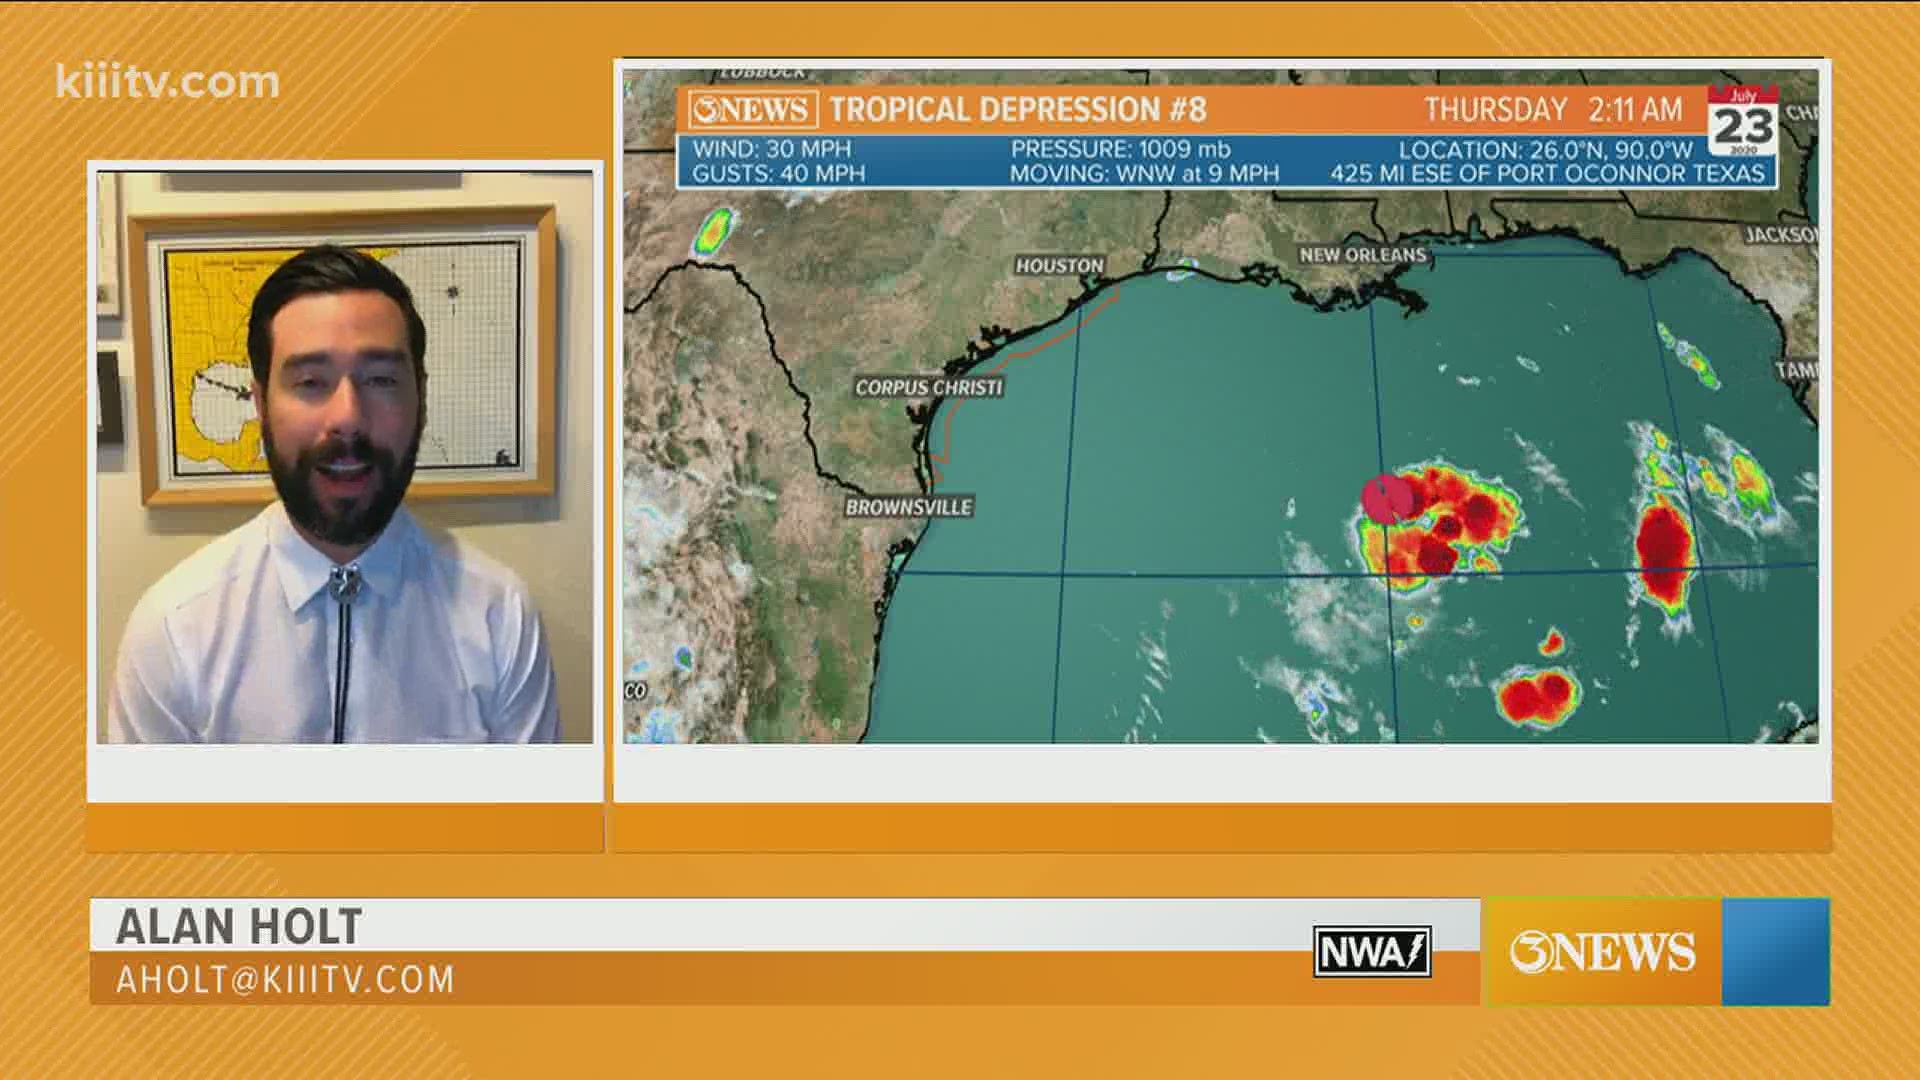 WEATHER BLOG: Tropical Depression #8 - Everything you need ...